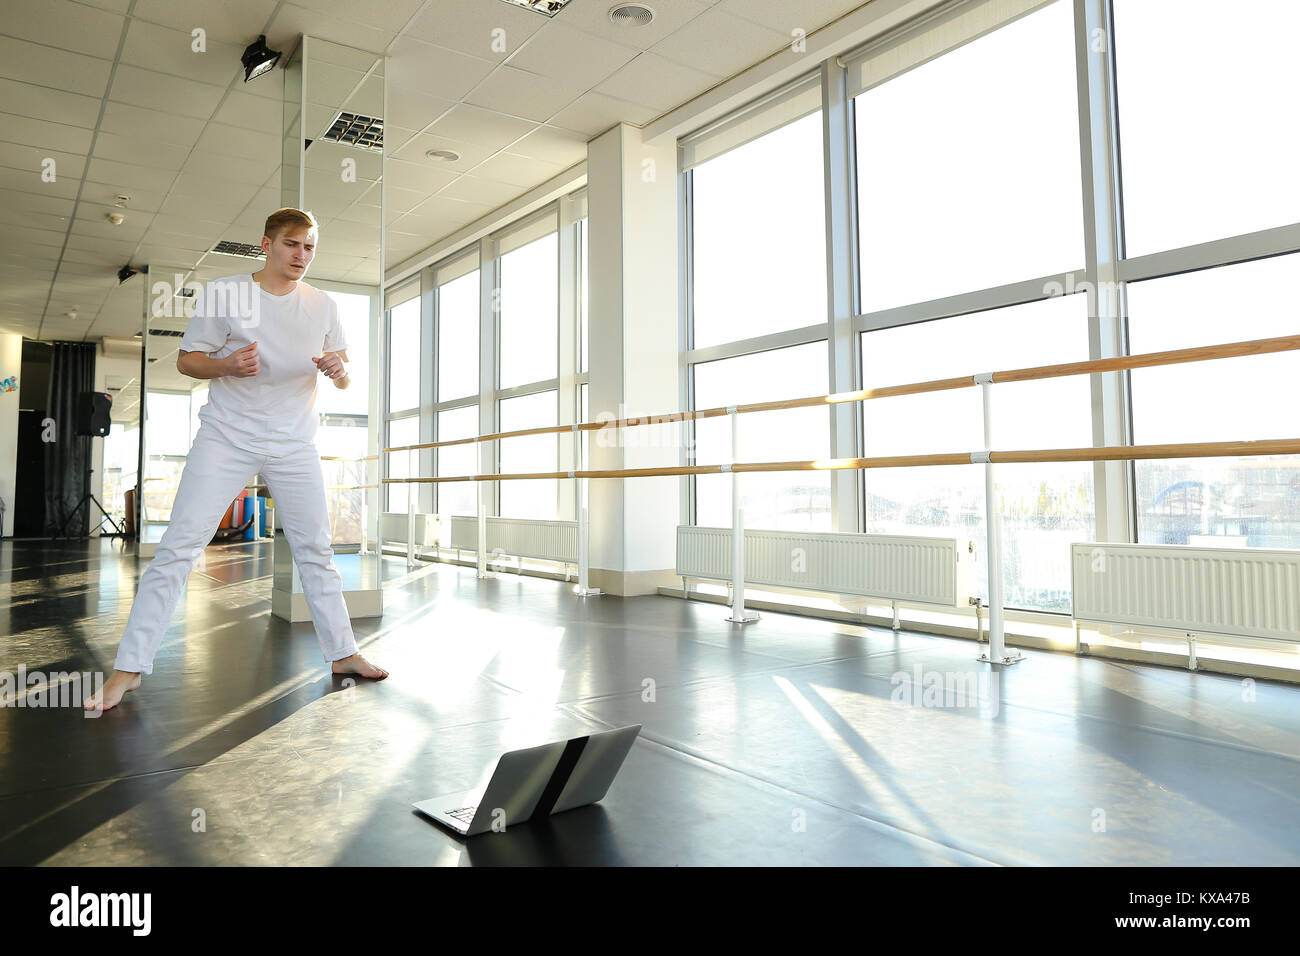 Male person learning new movements with laptop at gym. - Stock Image